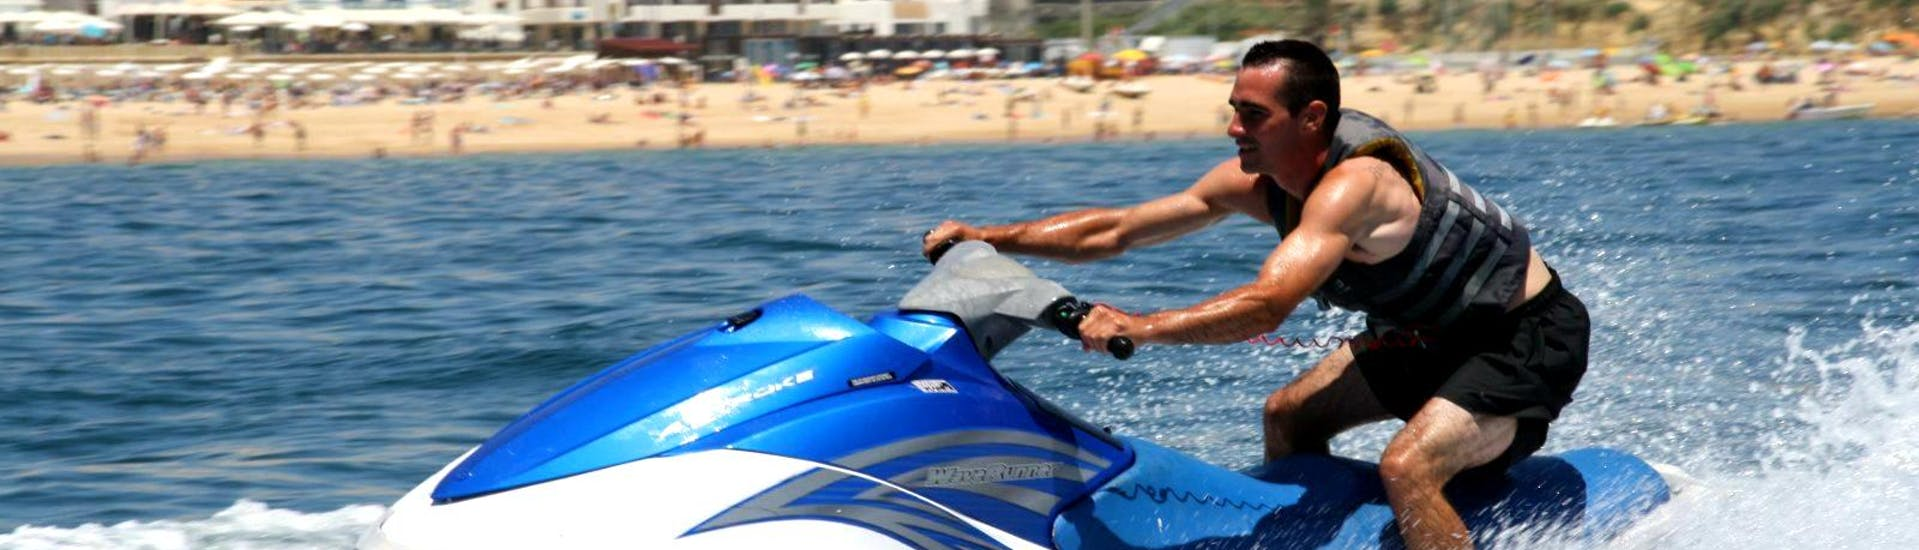 A man enjoying his fast ride off the coast of Albufeira on the Duo Jetski he hired from Dream Waves.